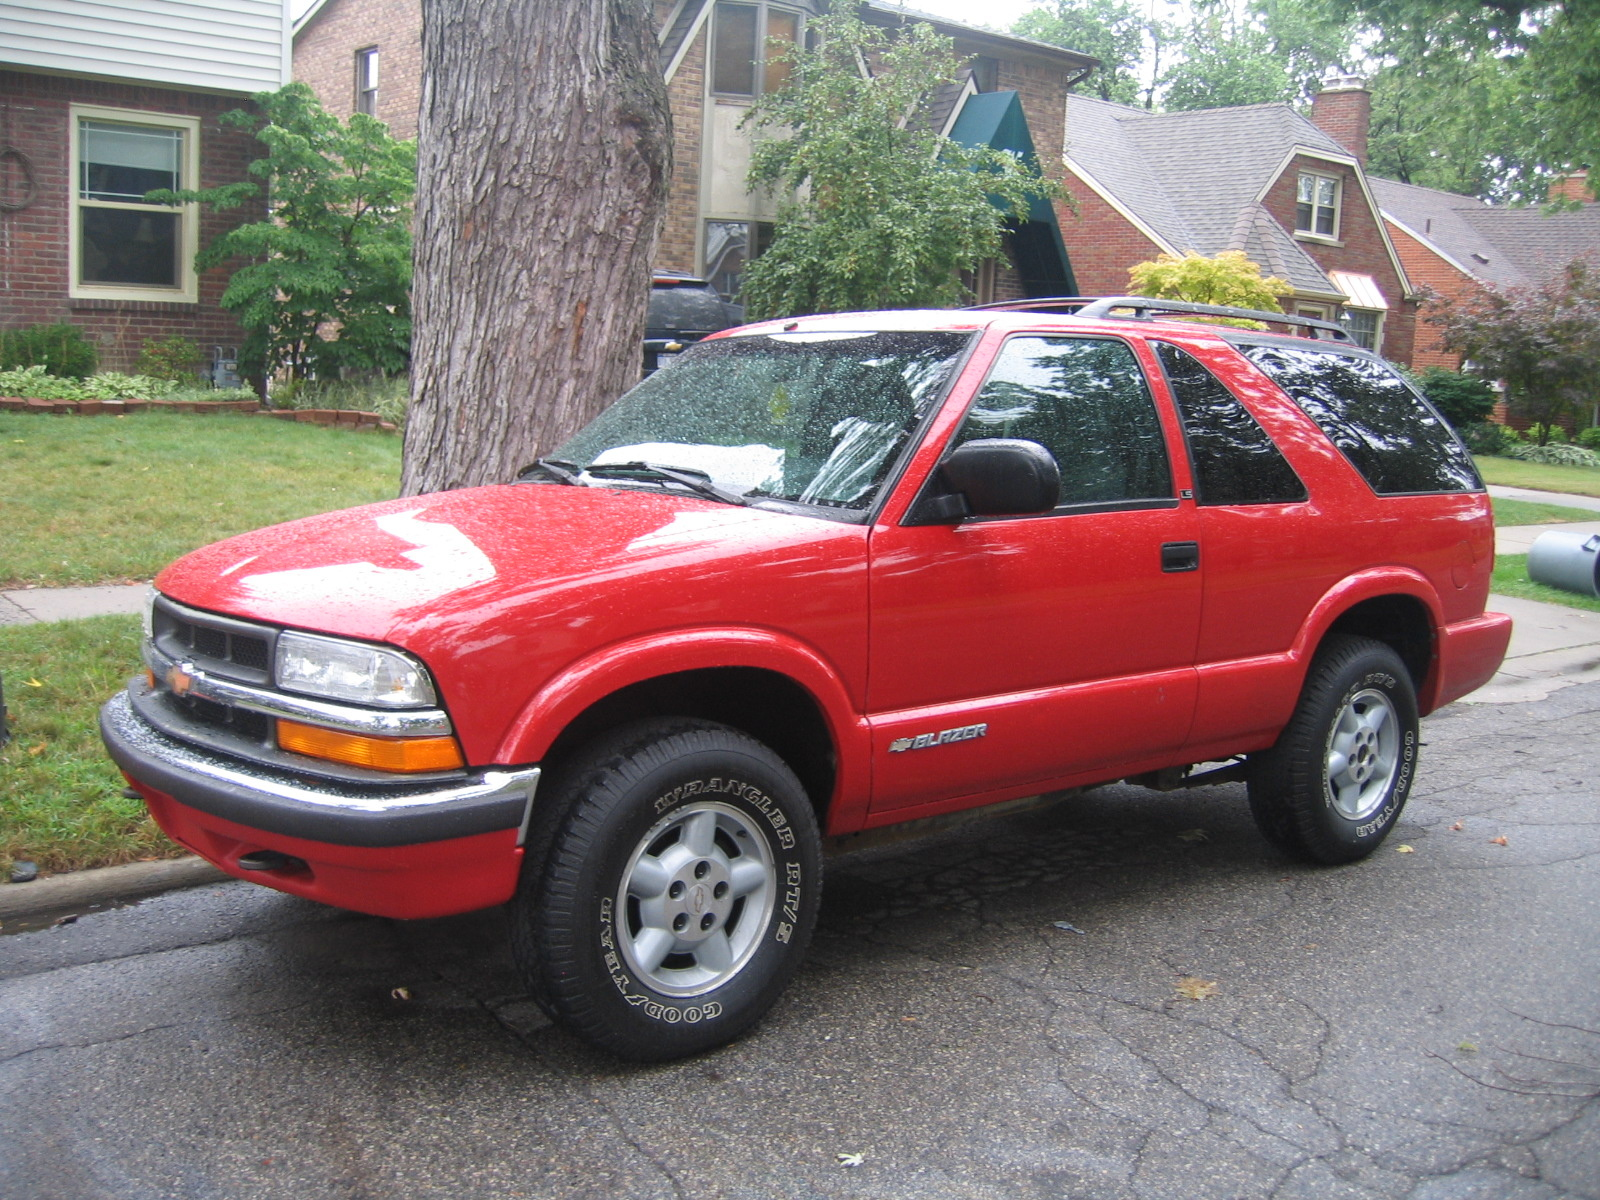 Chevrolet Blazer Dr Ls Wd Suv Pic X on 2000 Chevrolet Blazer Cargo Space